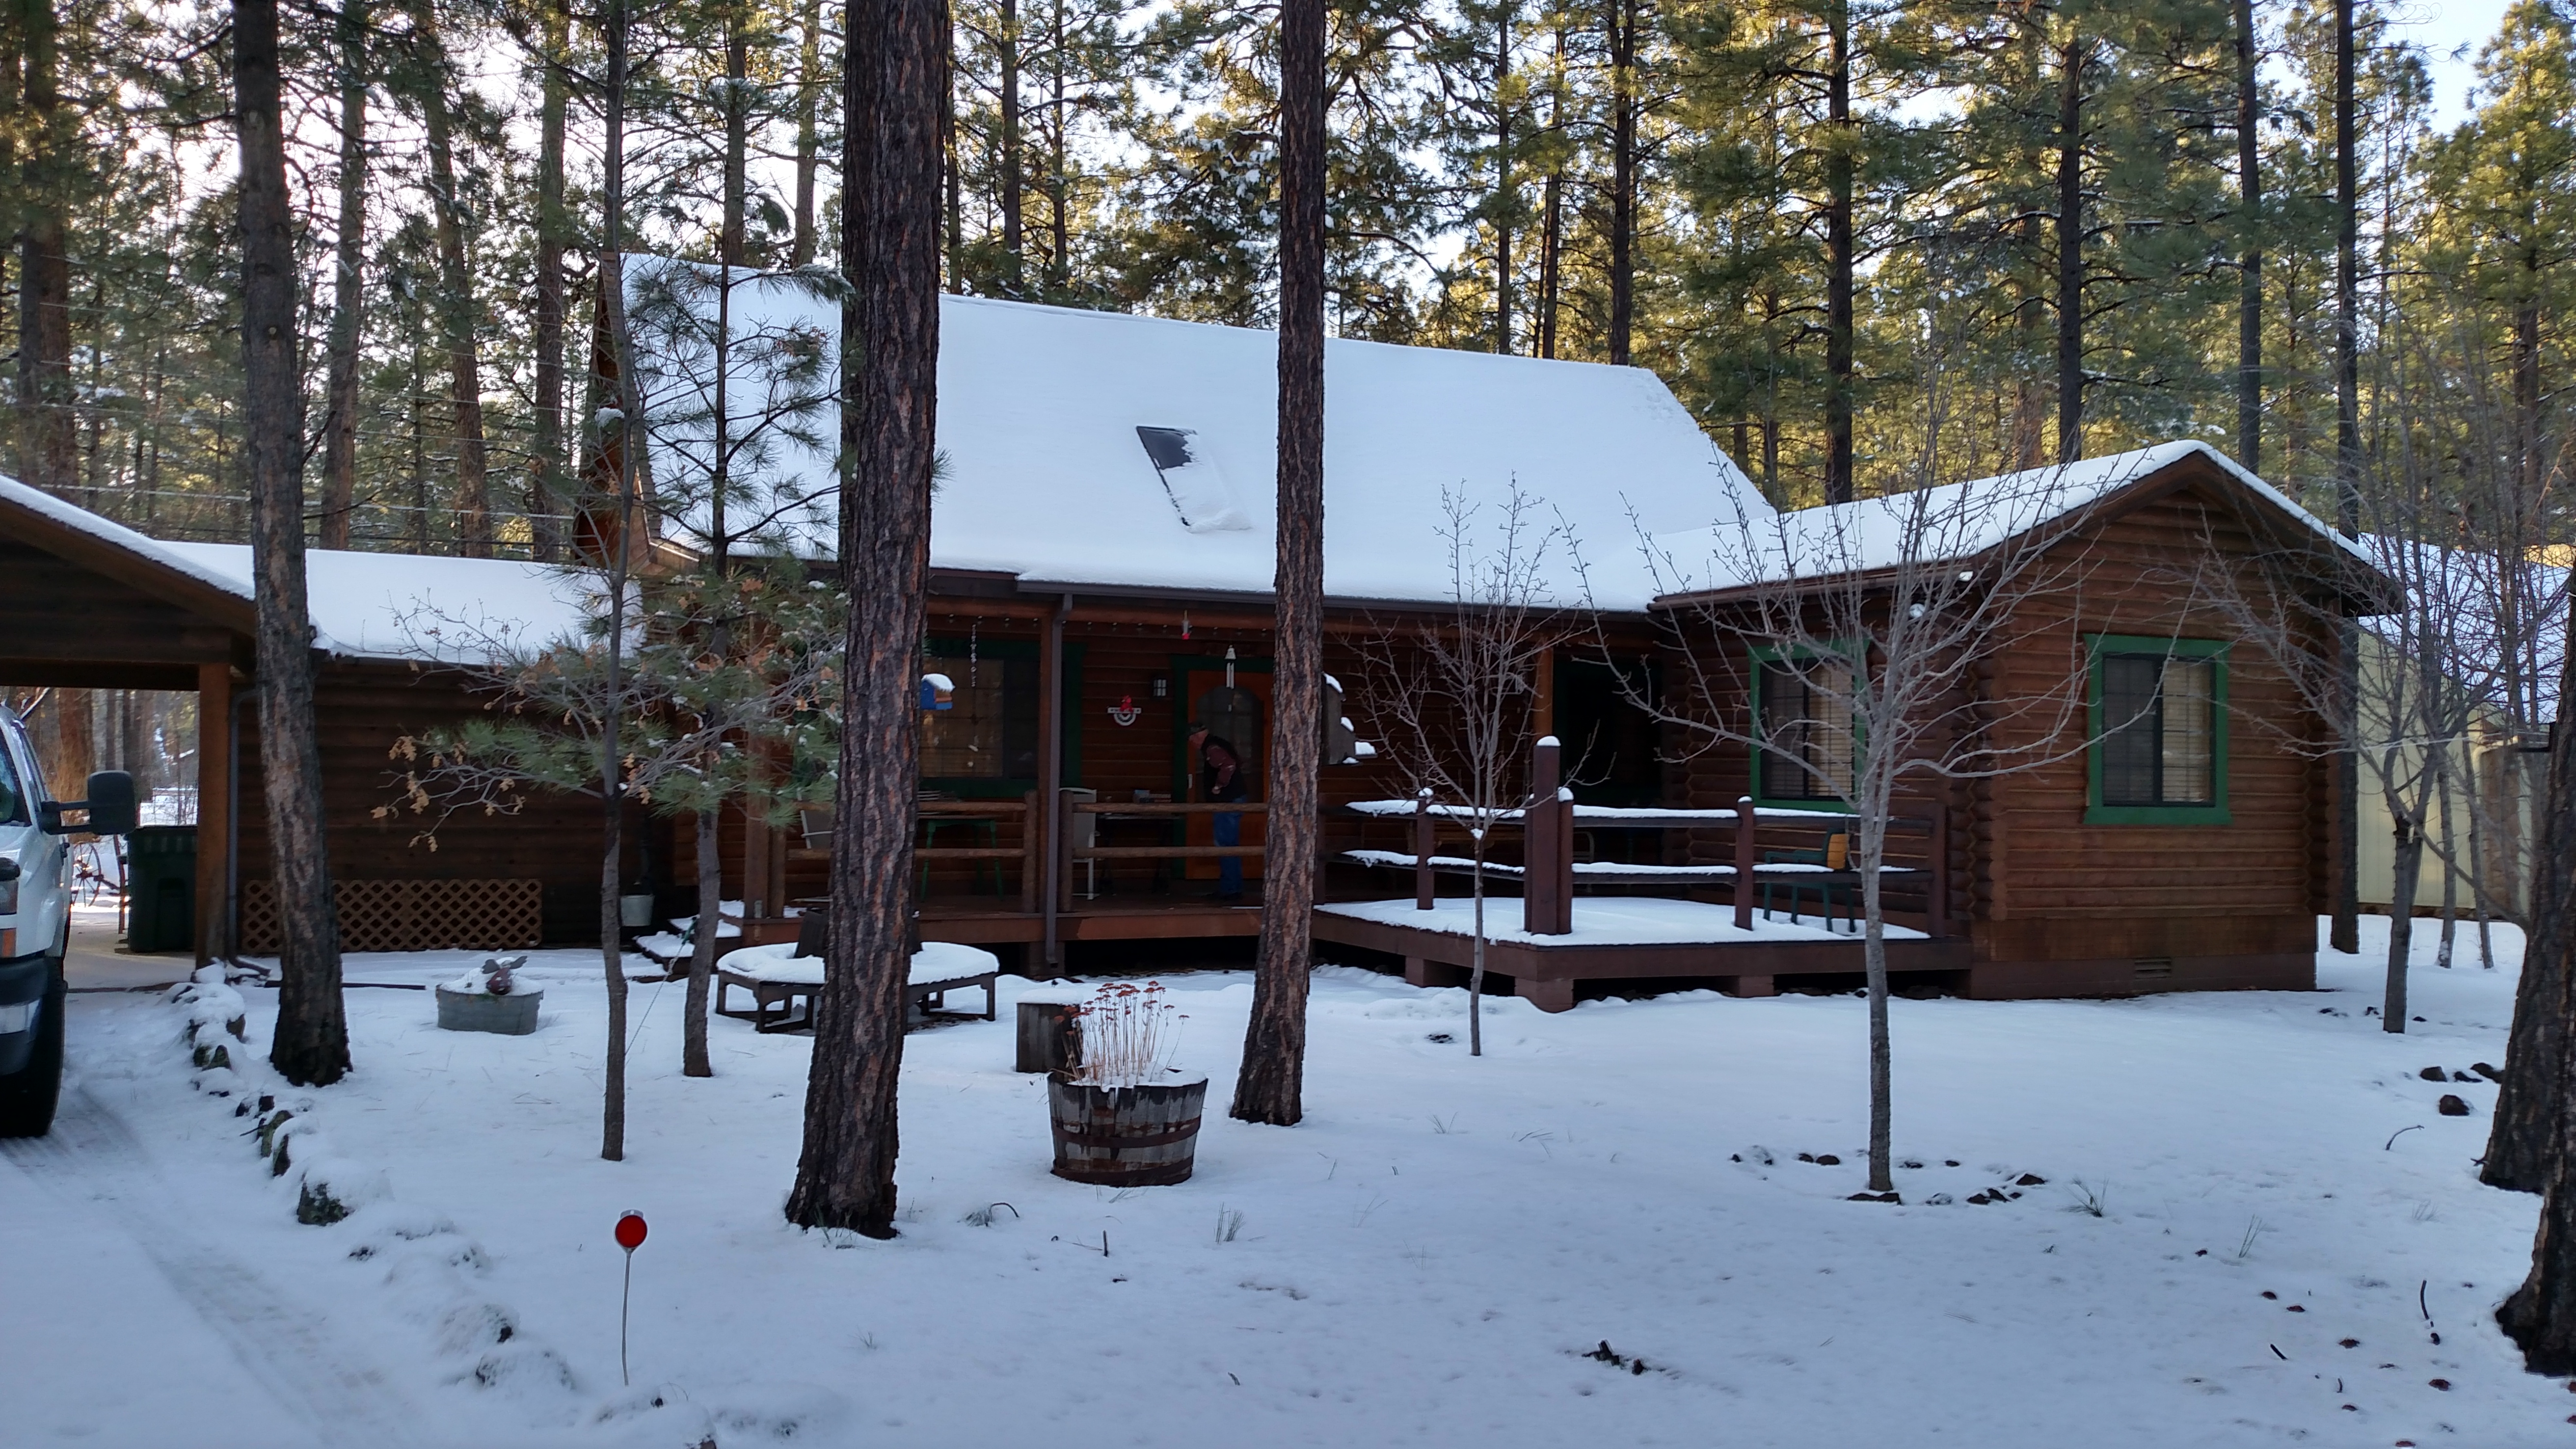 rest hidden book pinetop disposition rentals az accesskeyid hotel our alloworigin in cabins cabin at now